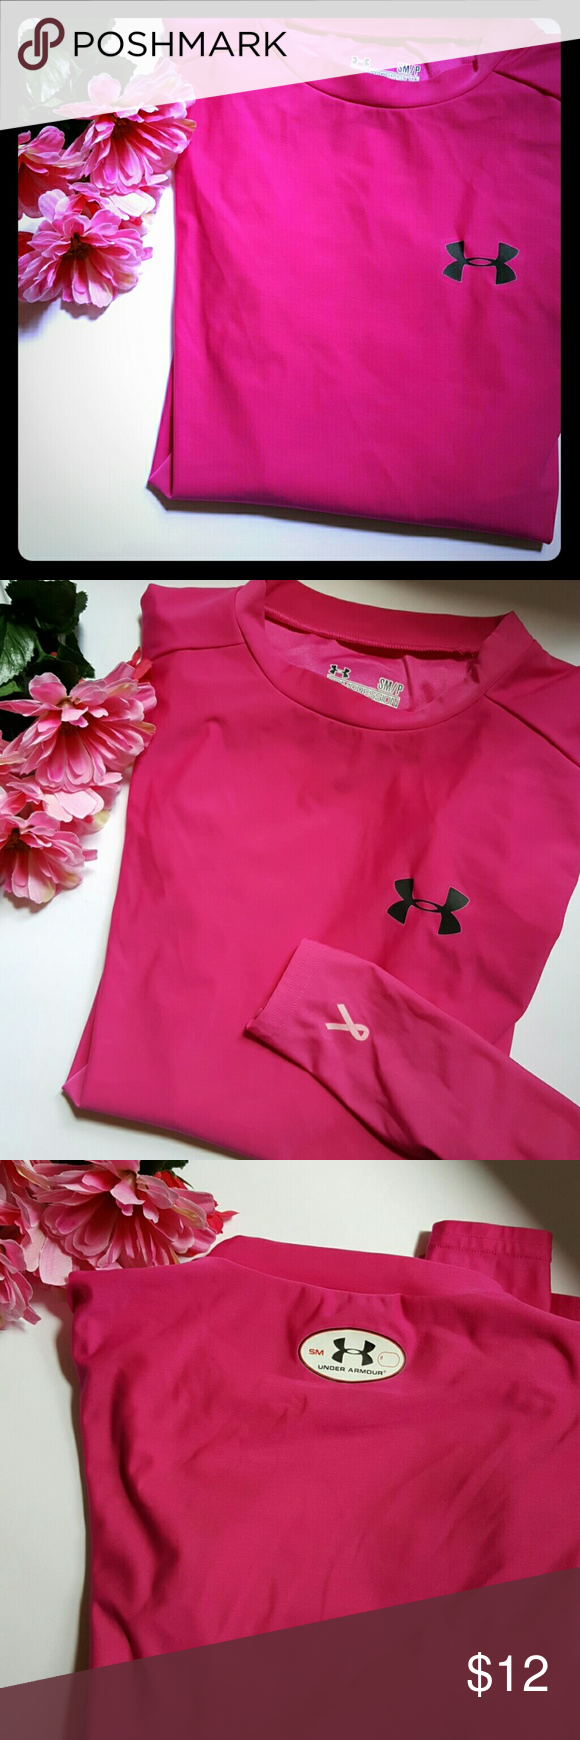 ca8fafa7 Breast Cancer Shirts Under Armour